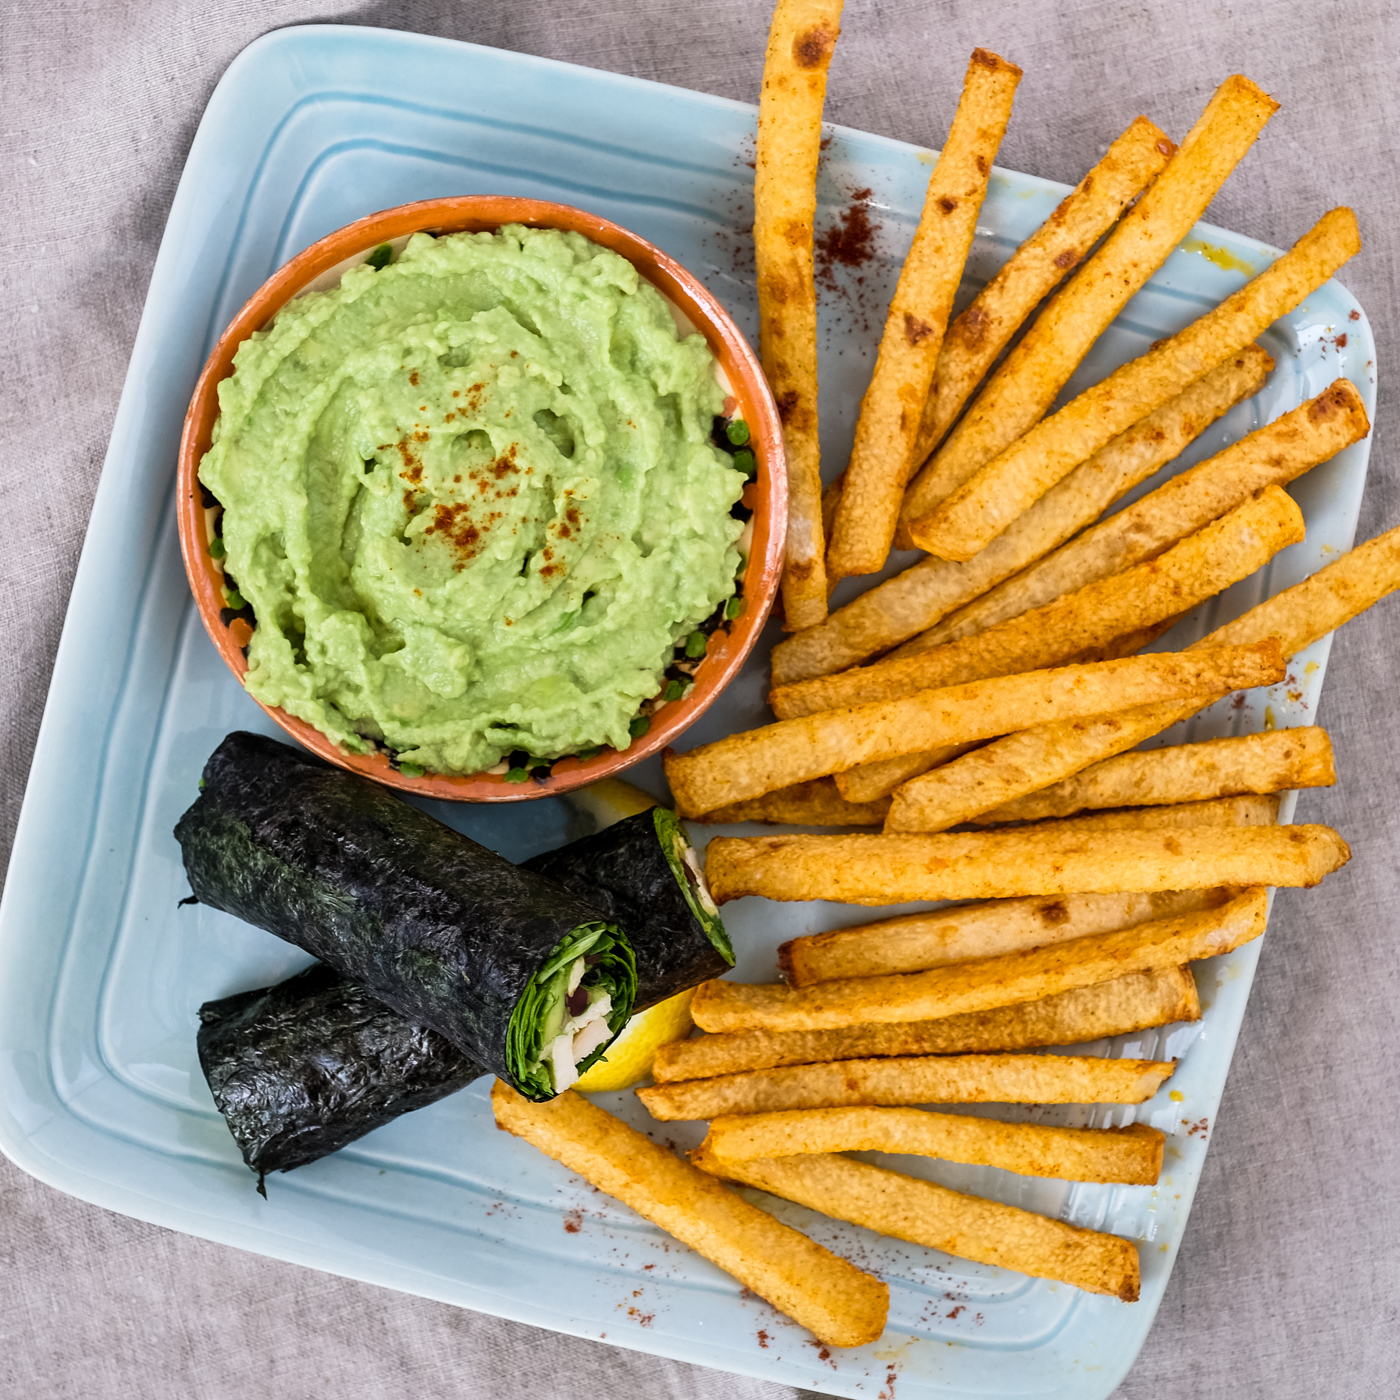 Chicken nori rolls served with an avocado dipping sauce and jicama fries